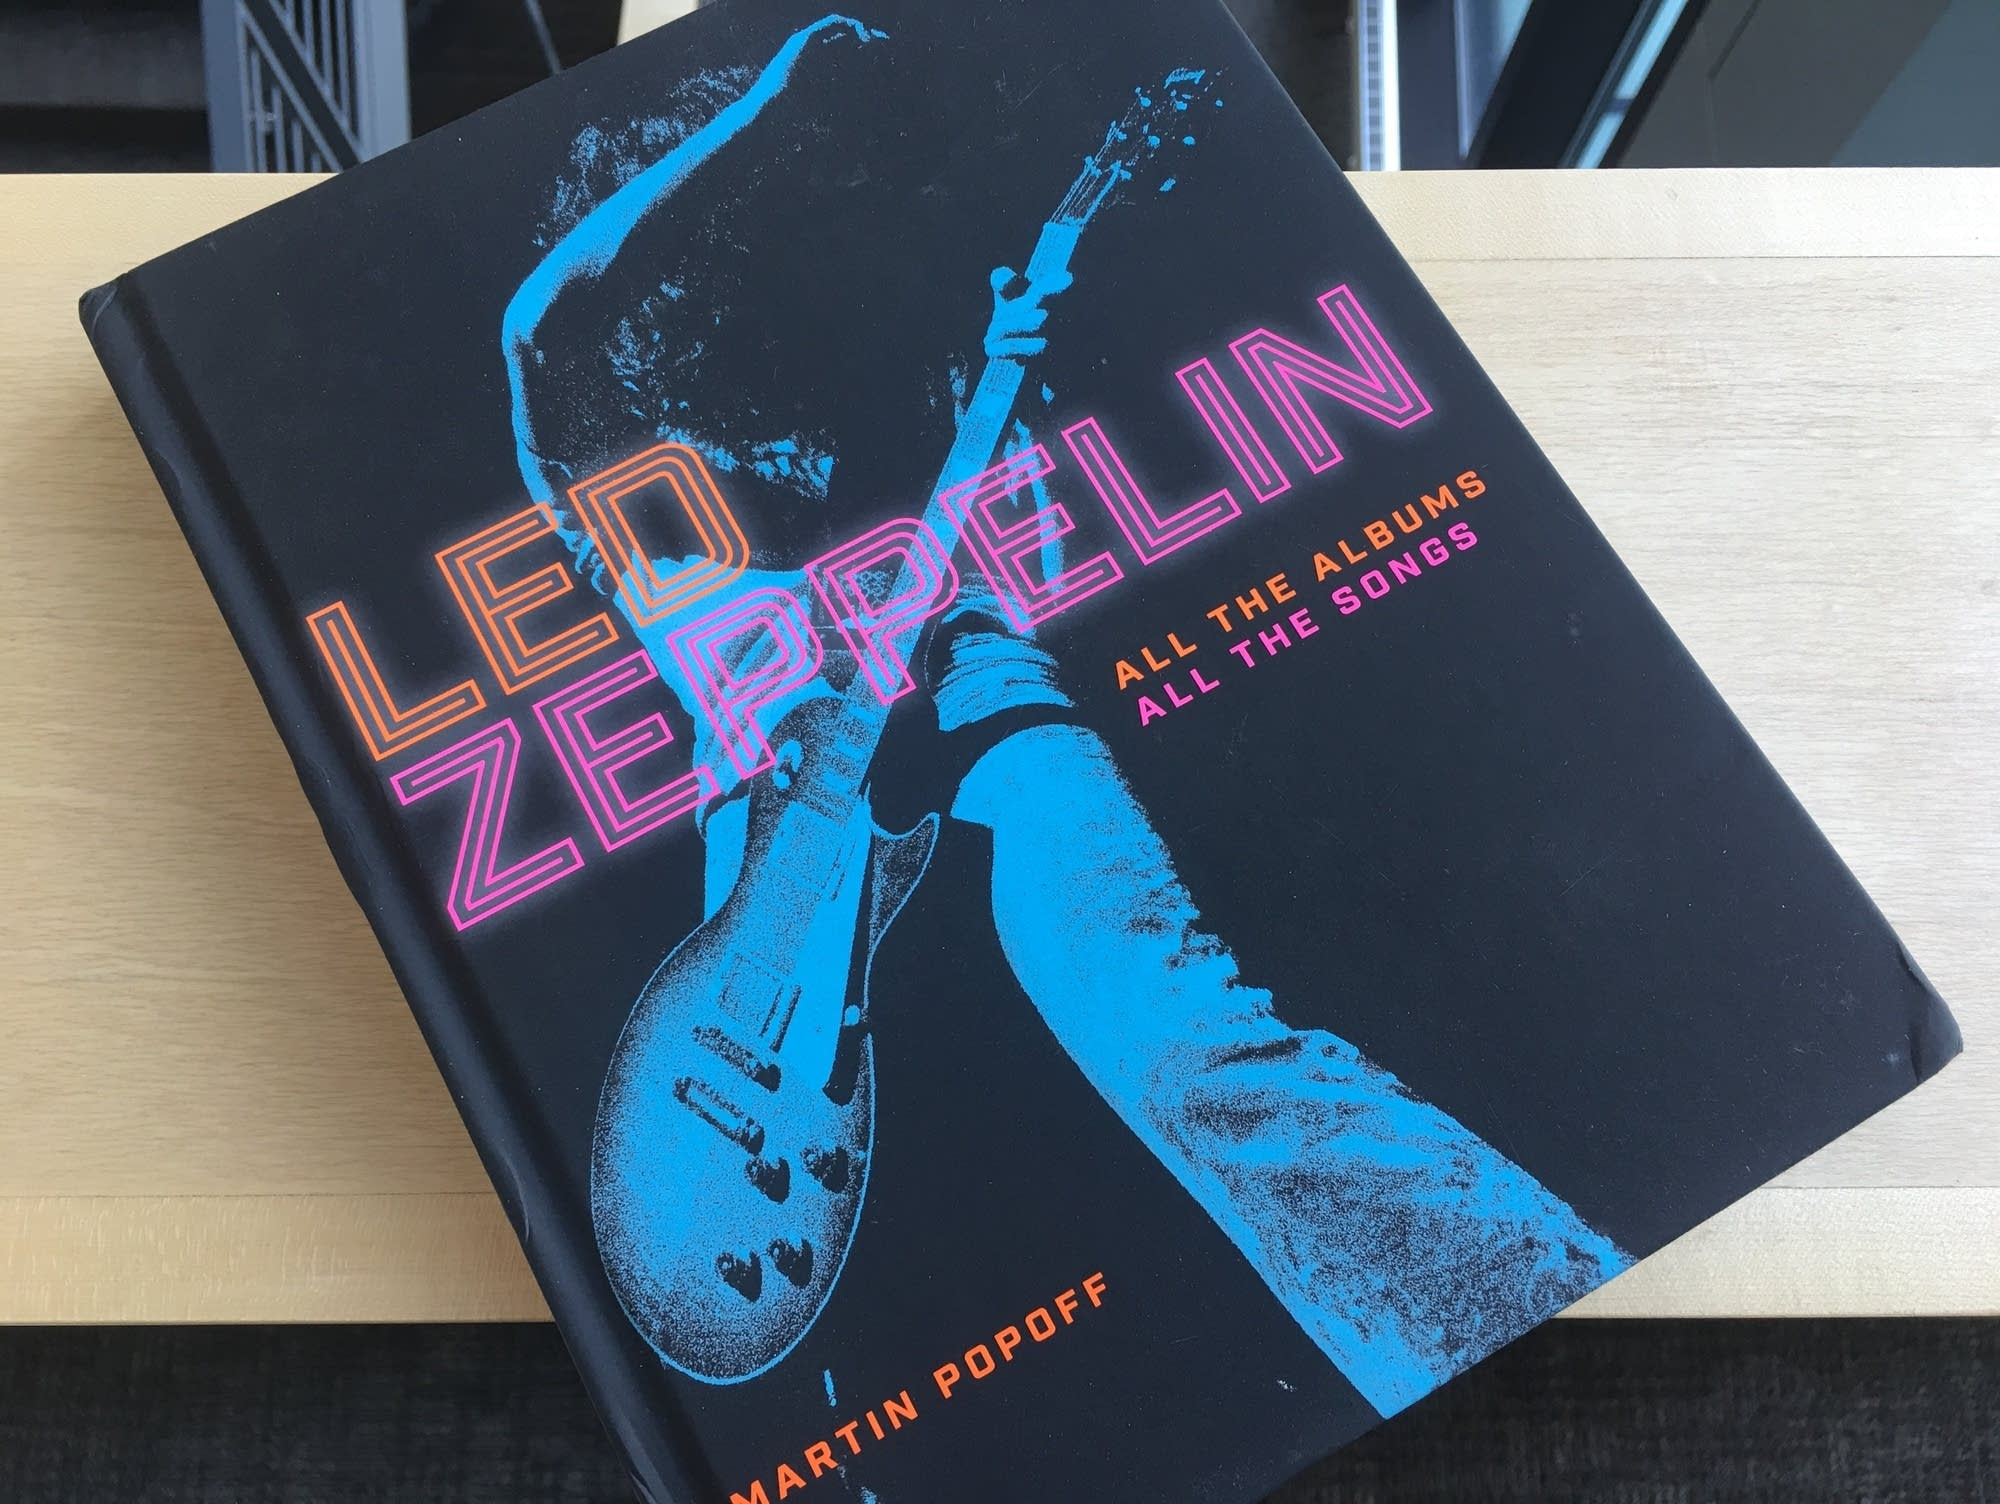 Martin Popoff's 'Led Zeppelin: All the Albums, All the Songs.'